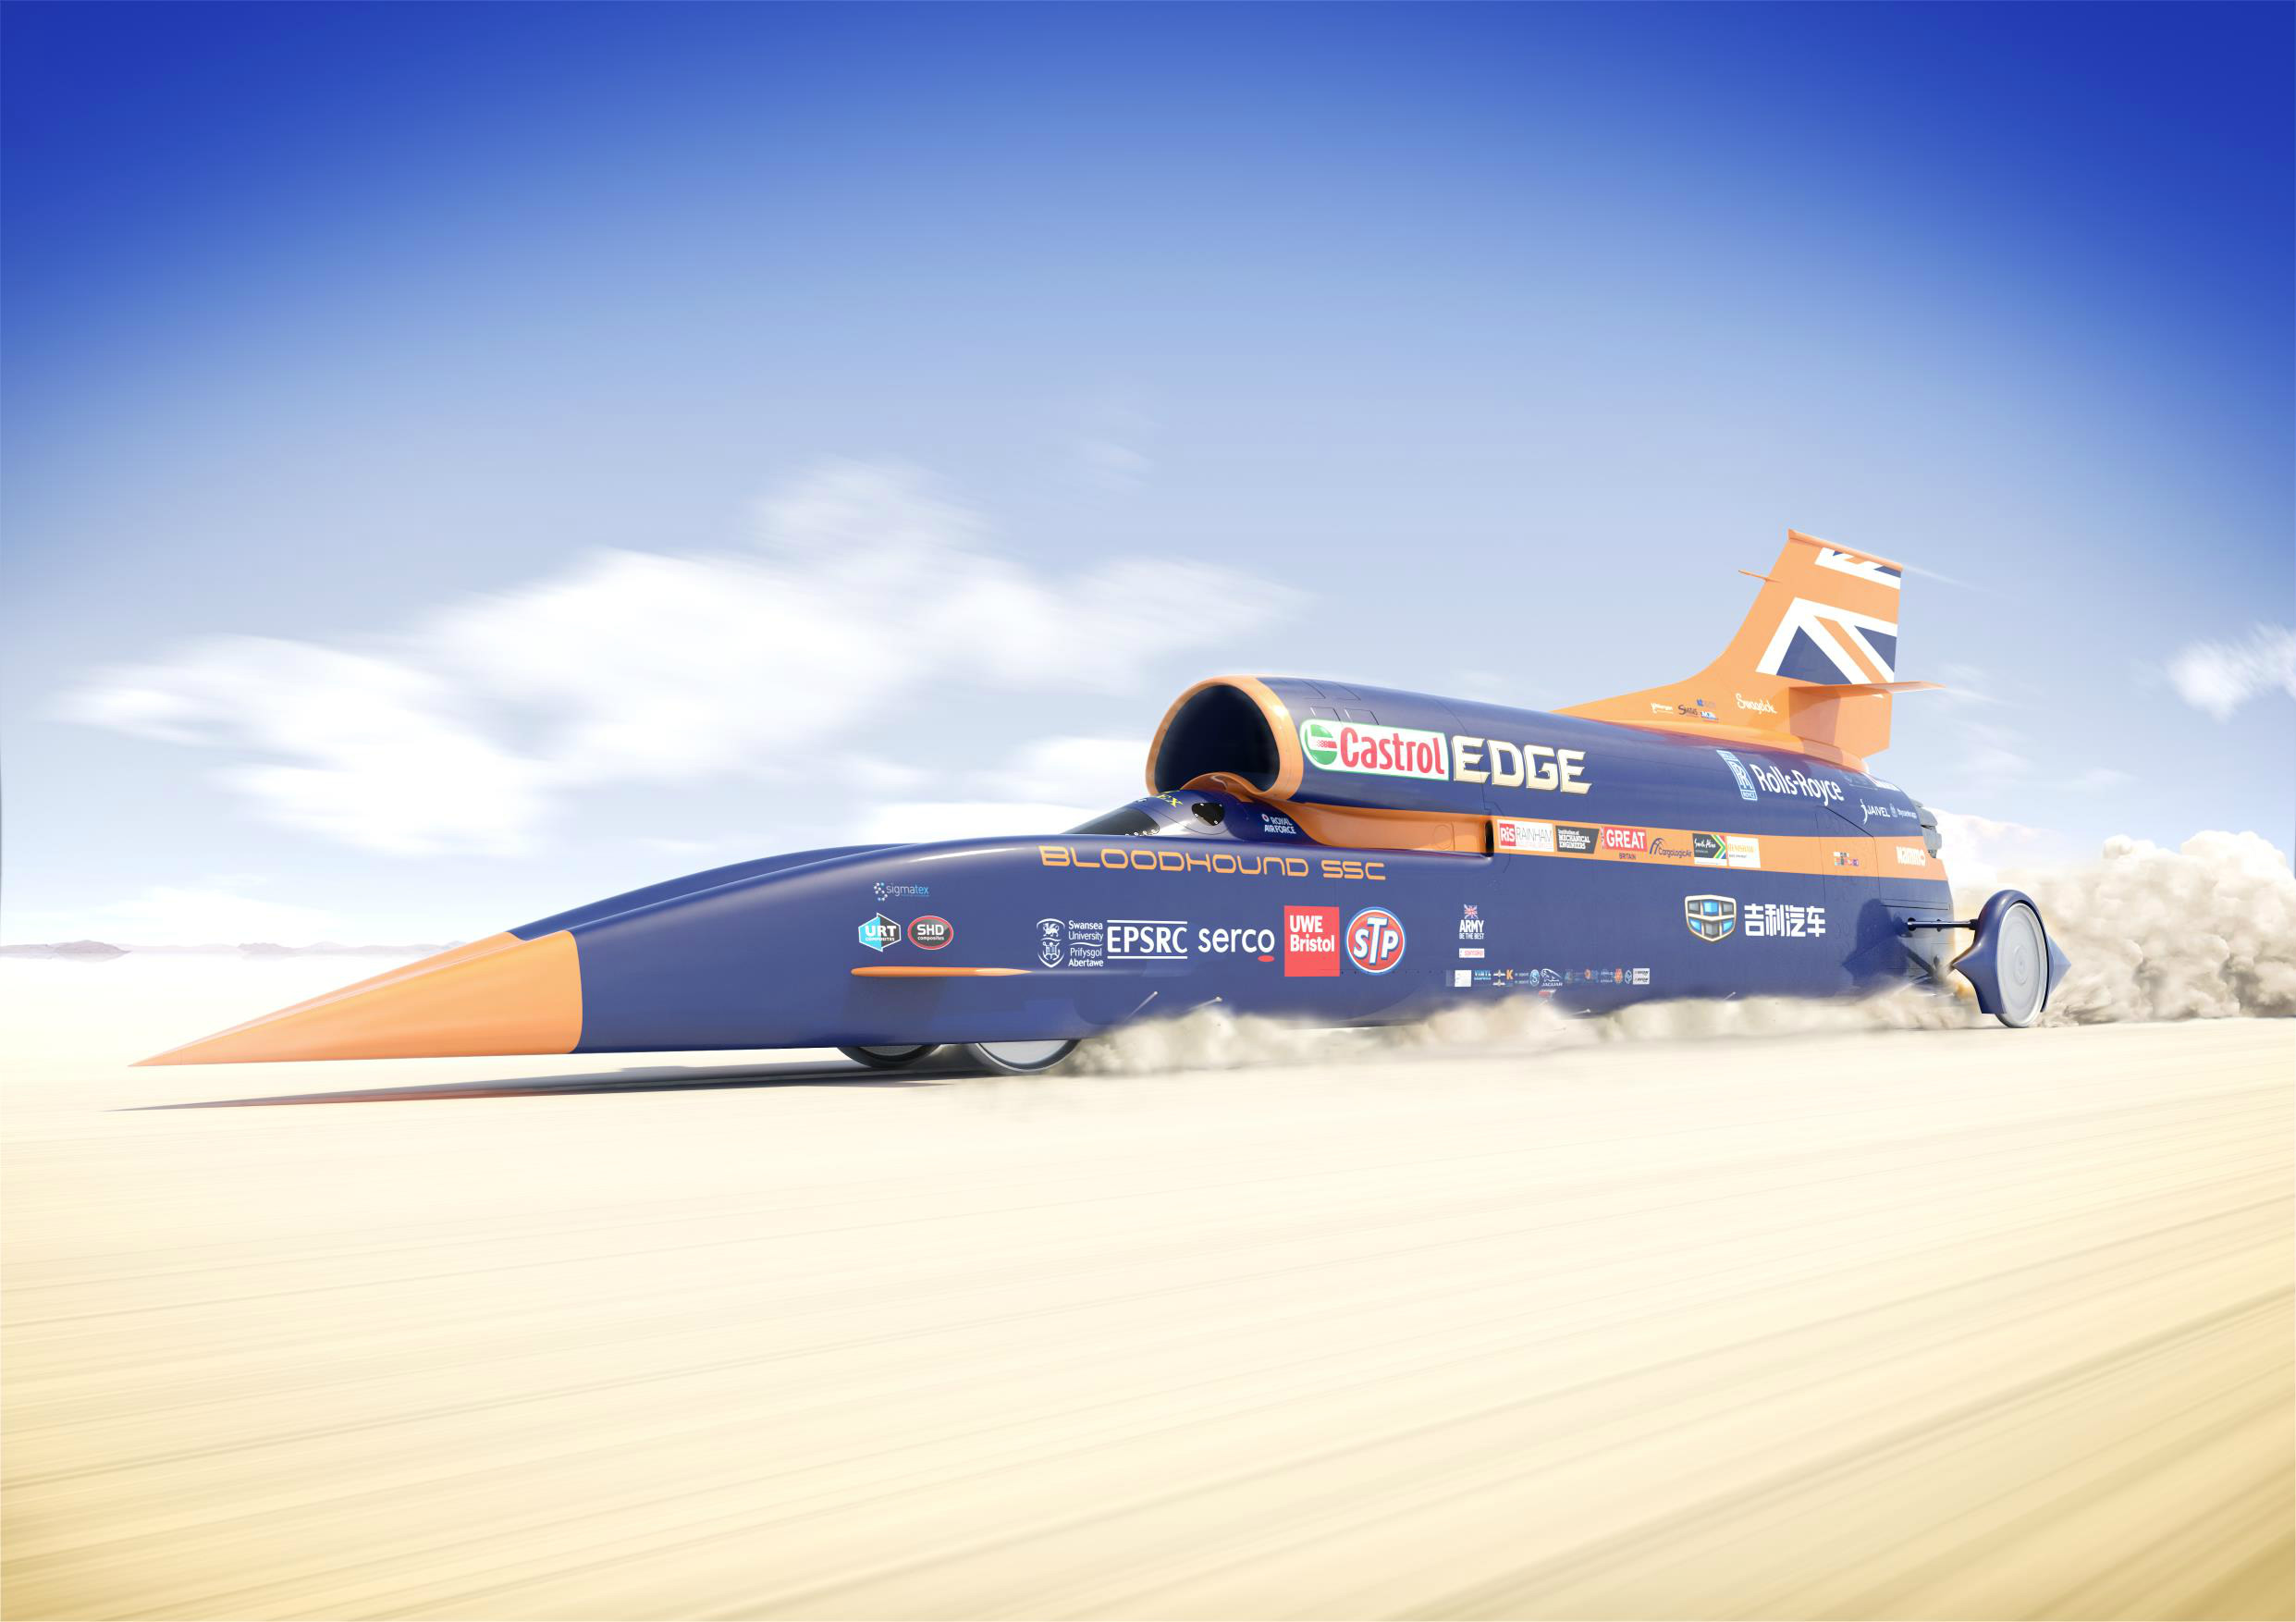 Bloodhound SSC will be a the 2018 London Motor Show